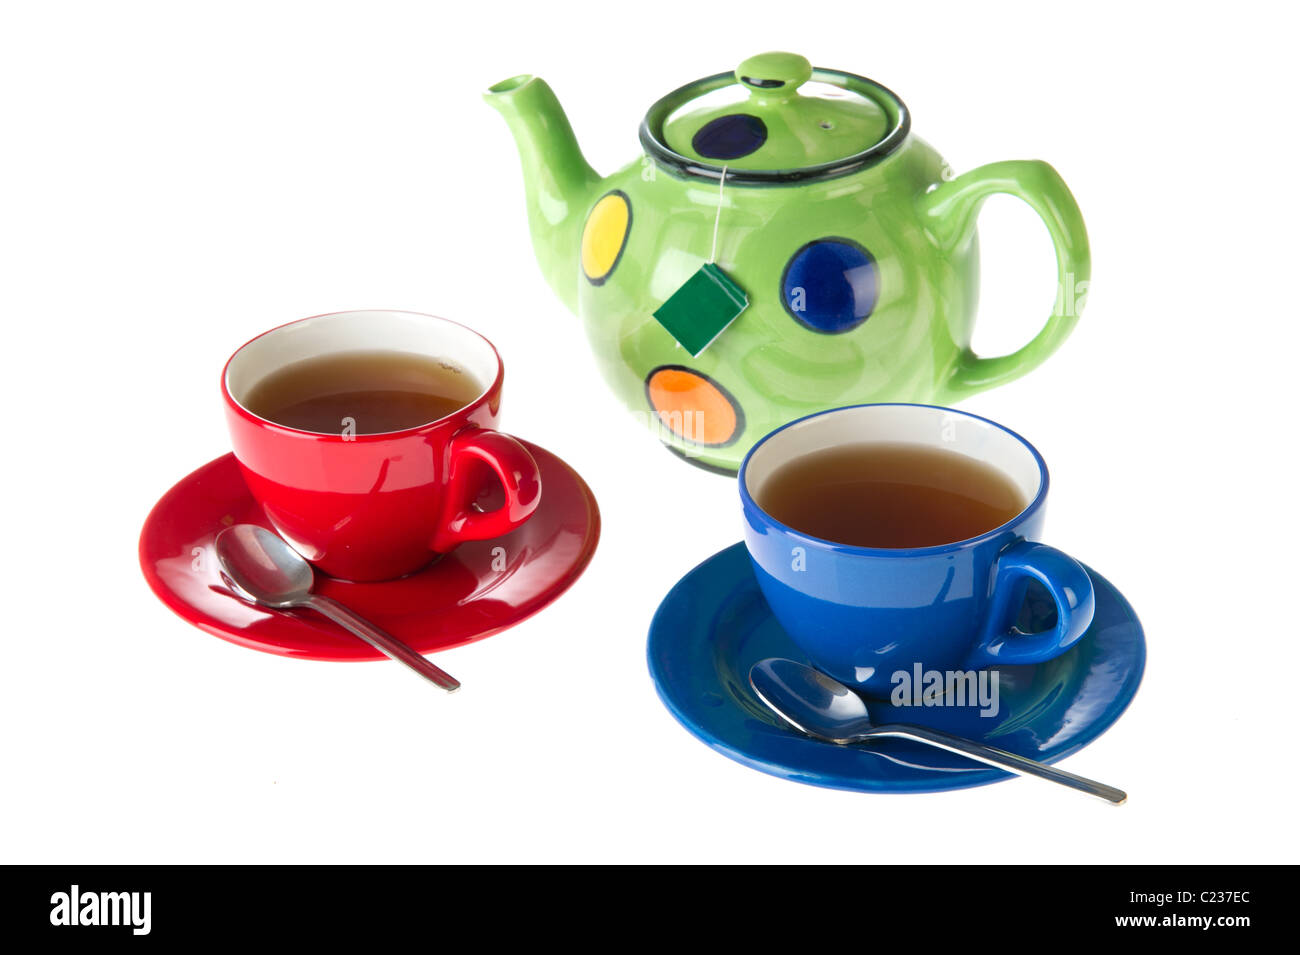 Tea pot with cups in red and blue  - Stock Image